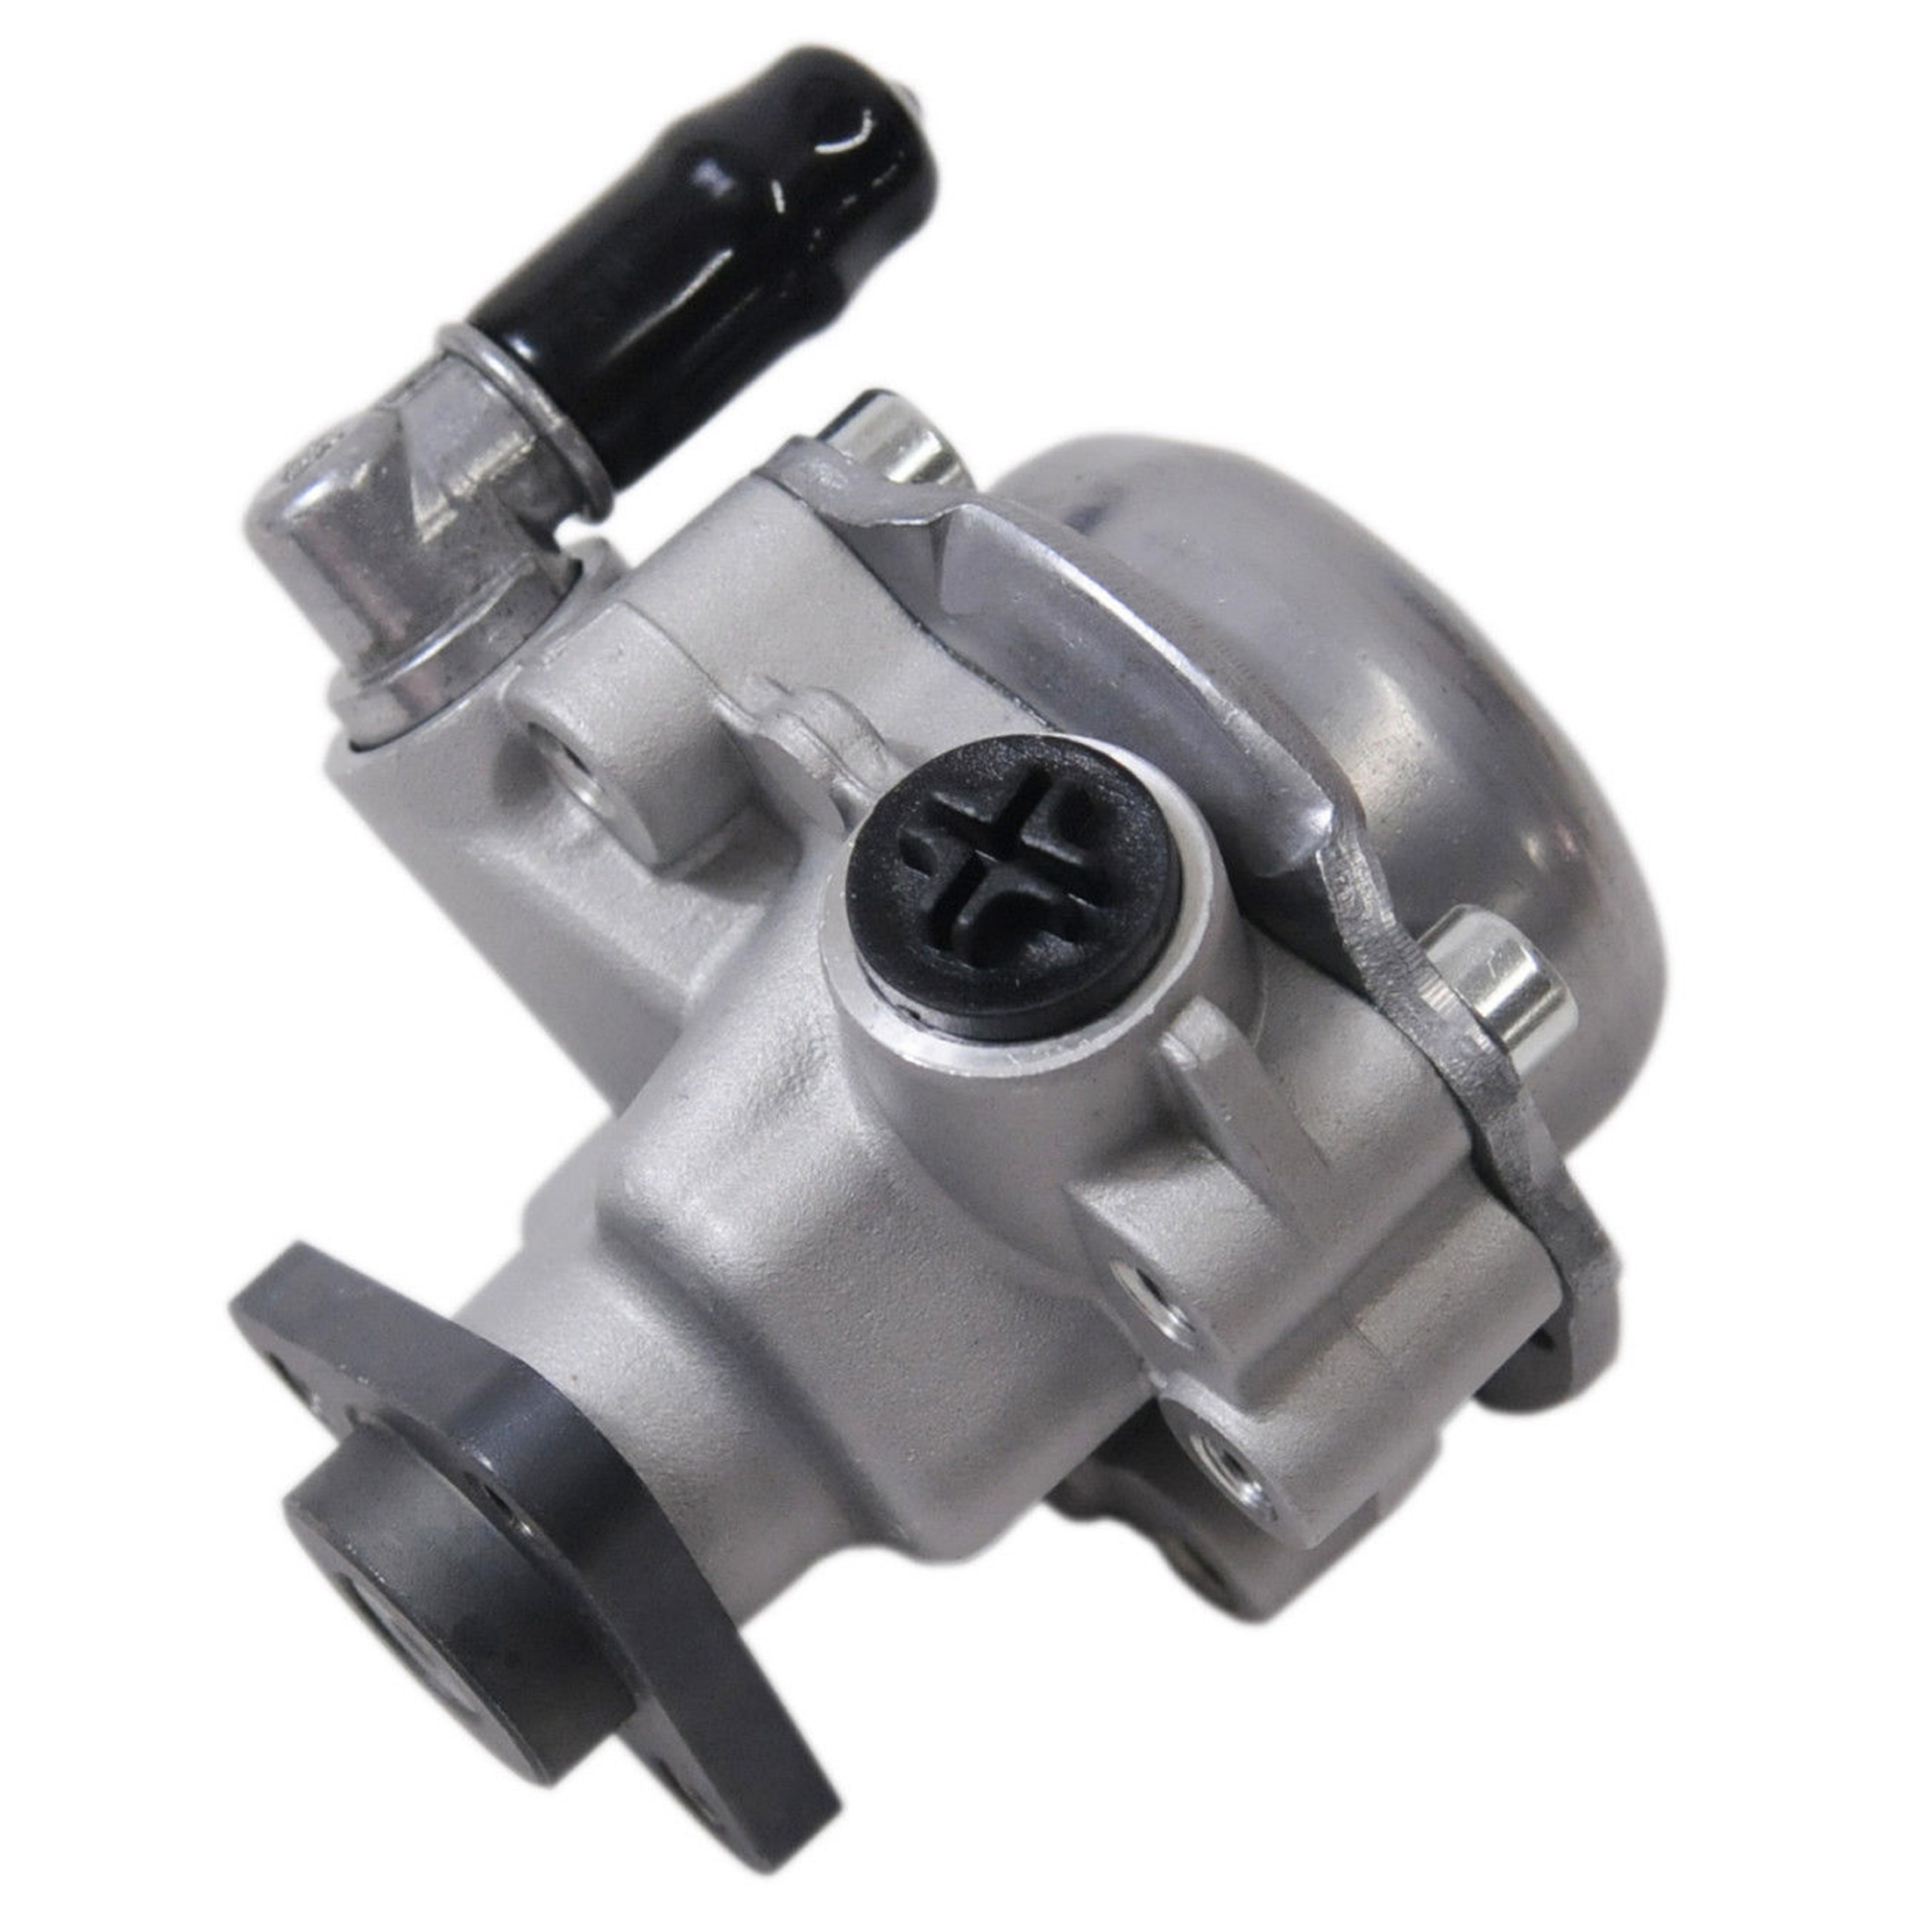 hight resolution of free shipping power steering pump for bmw e46 323i 325i 328ci 330i oe 553 58945 553 59076 55358945 55359076 32416760036 in distributors parts from